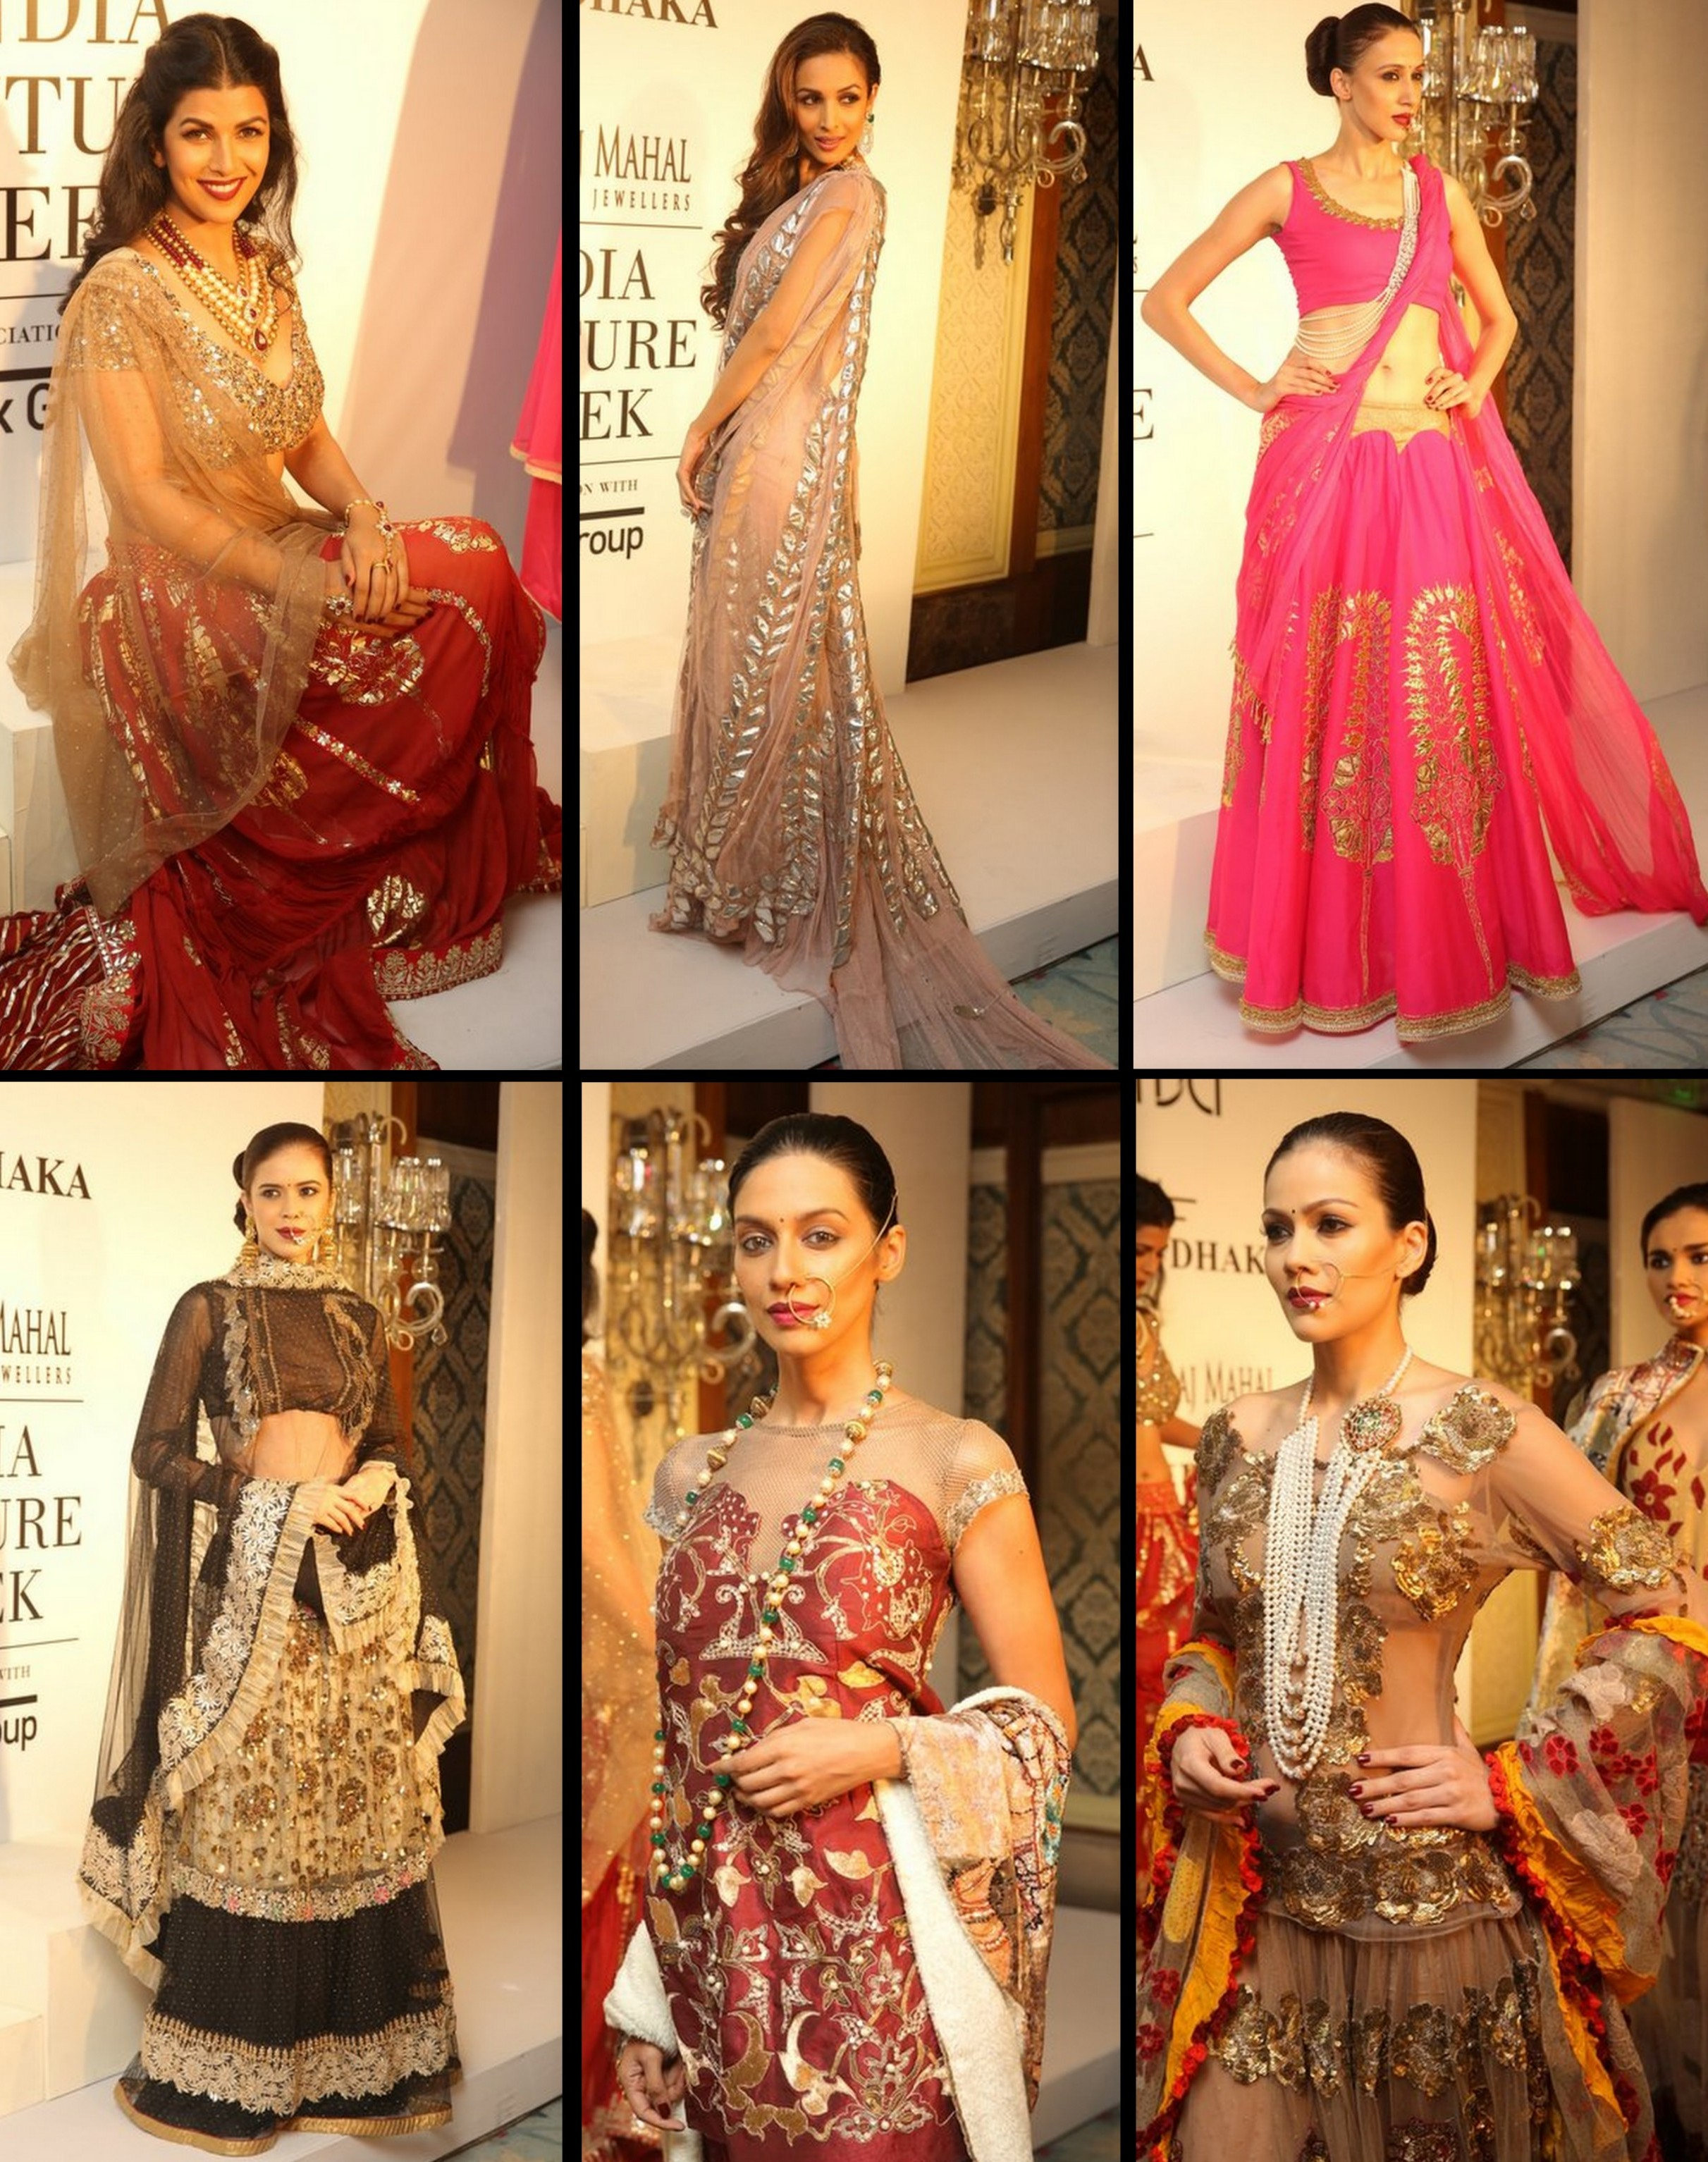 Rina Dhaka's collection at ICW 2014